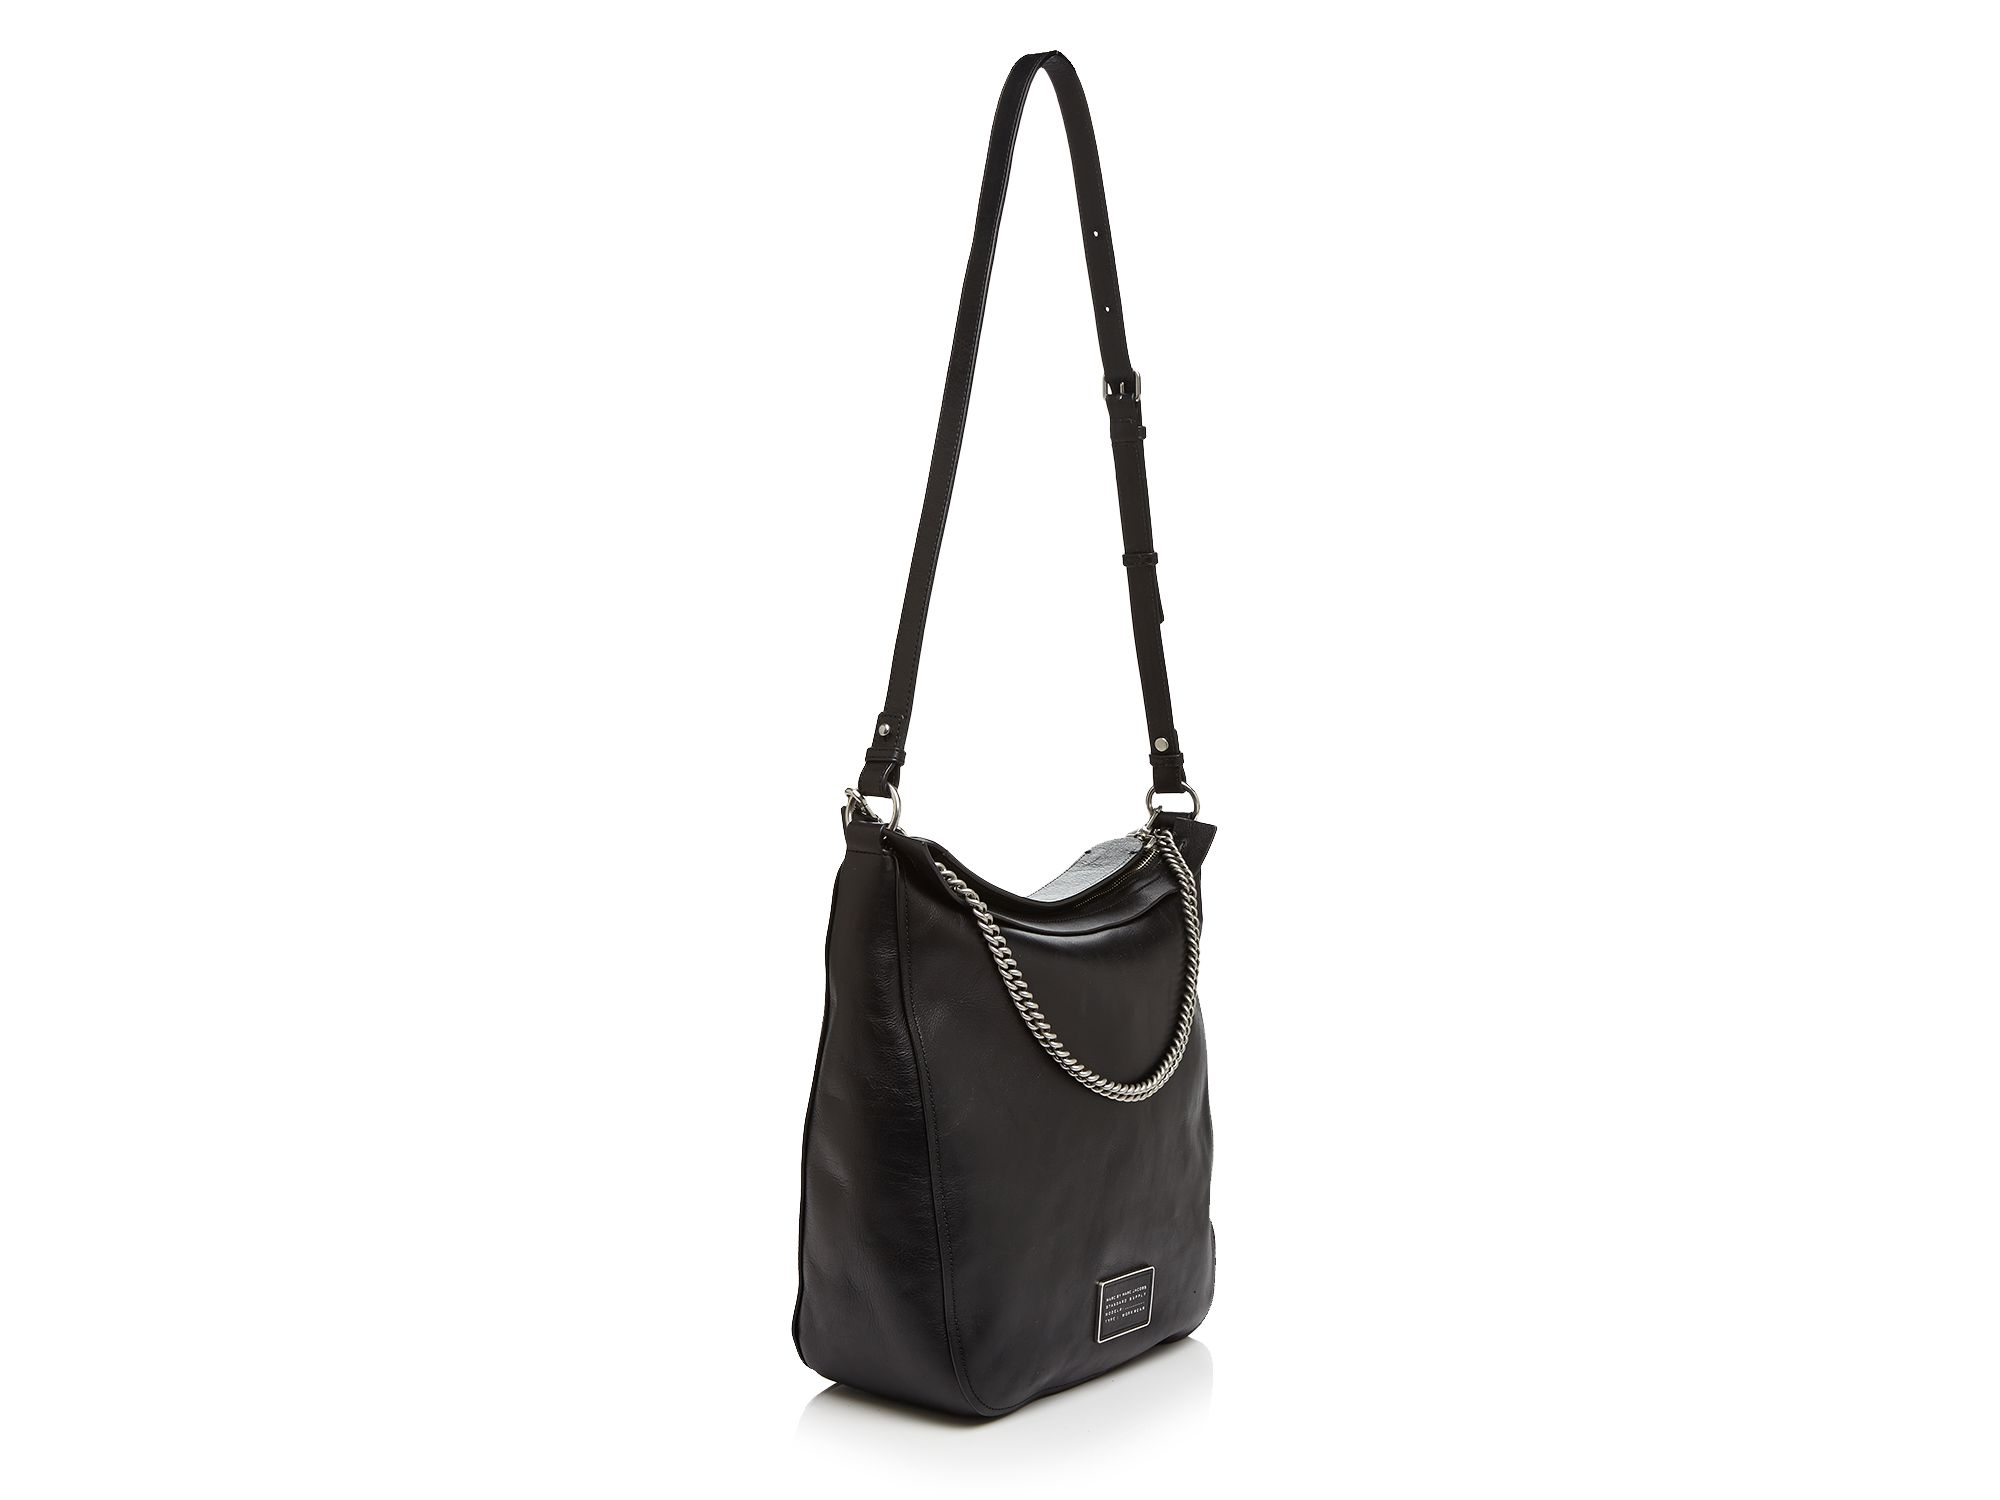 Lyst - Marc By Marc Jacobs Top Of The Chain Hobo in Black 4f7755a78a34d